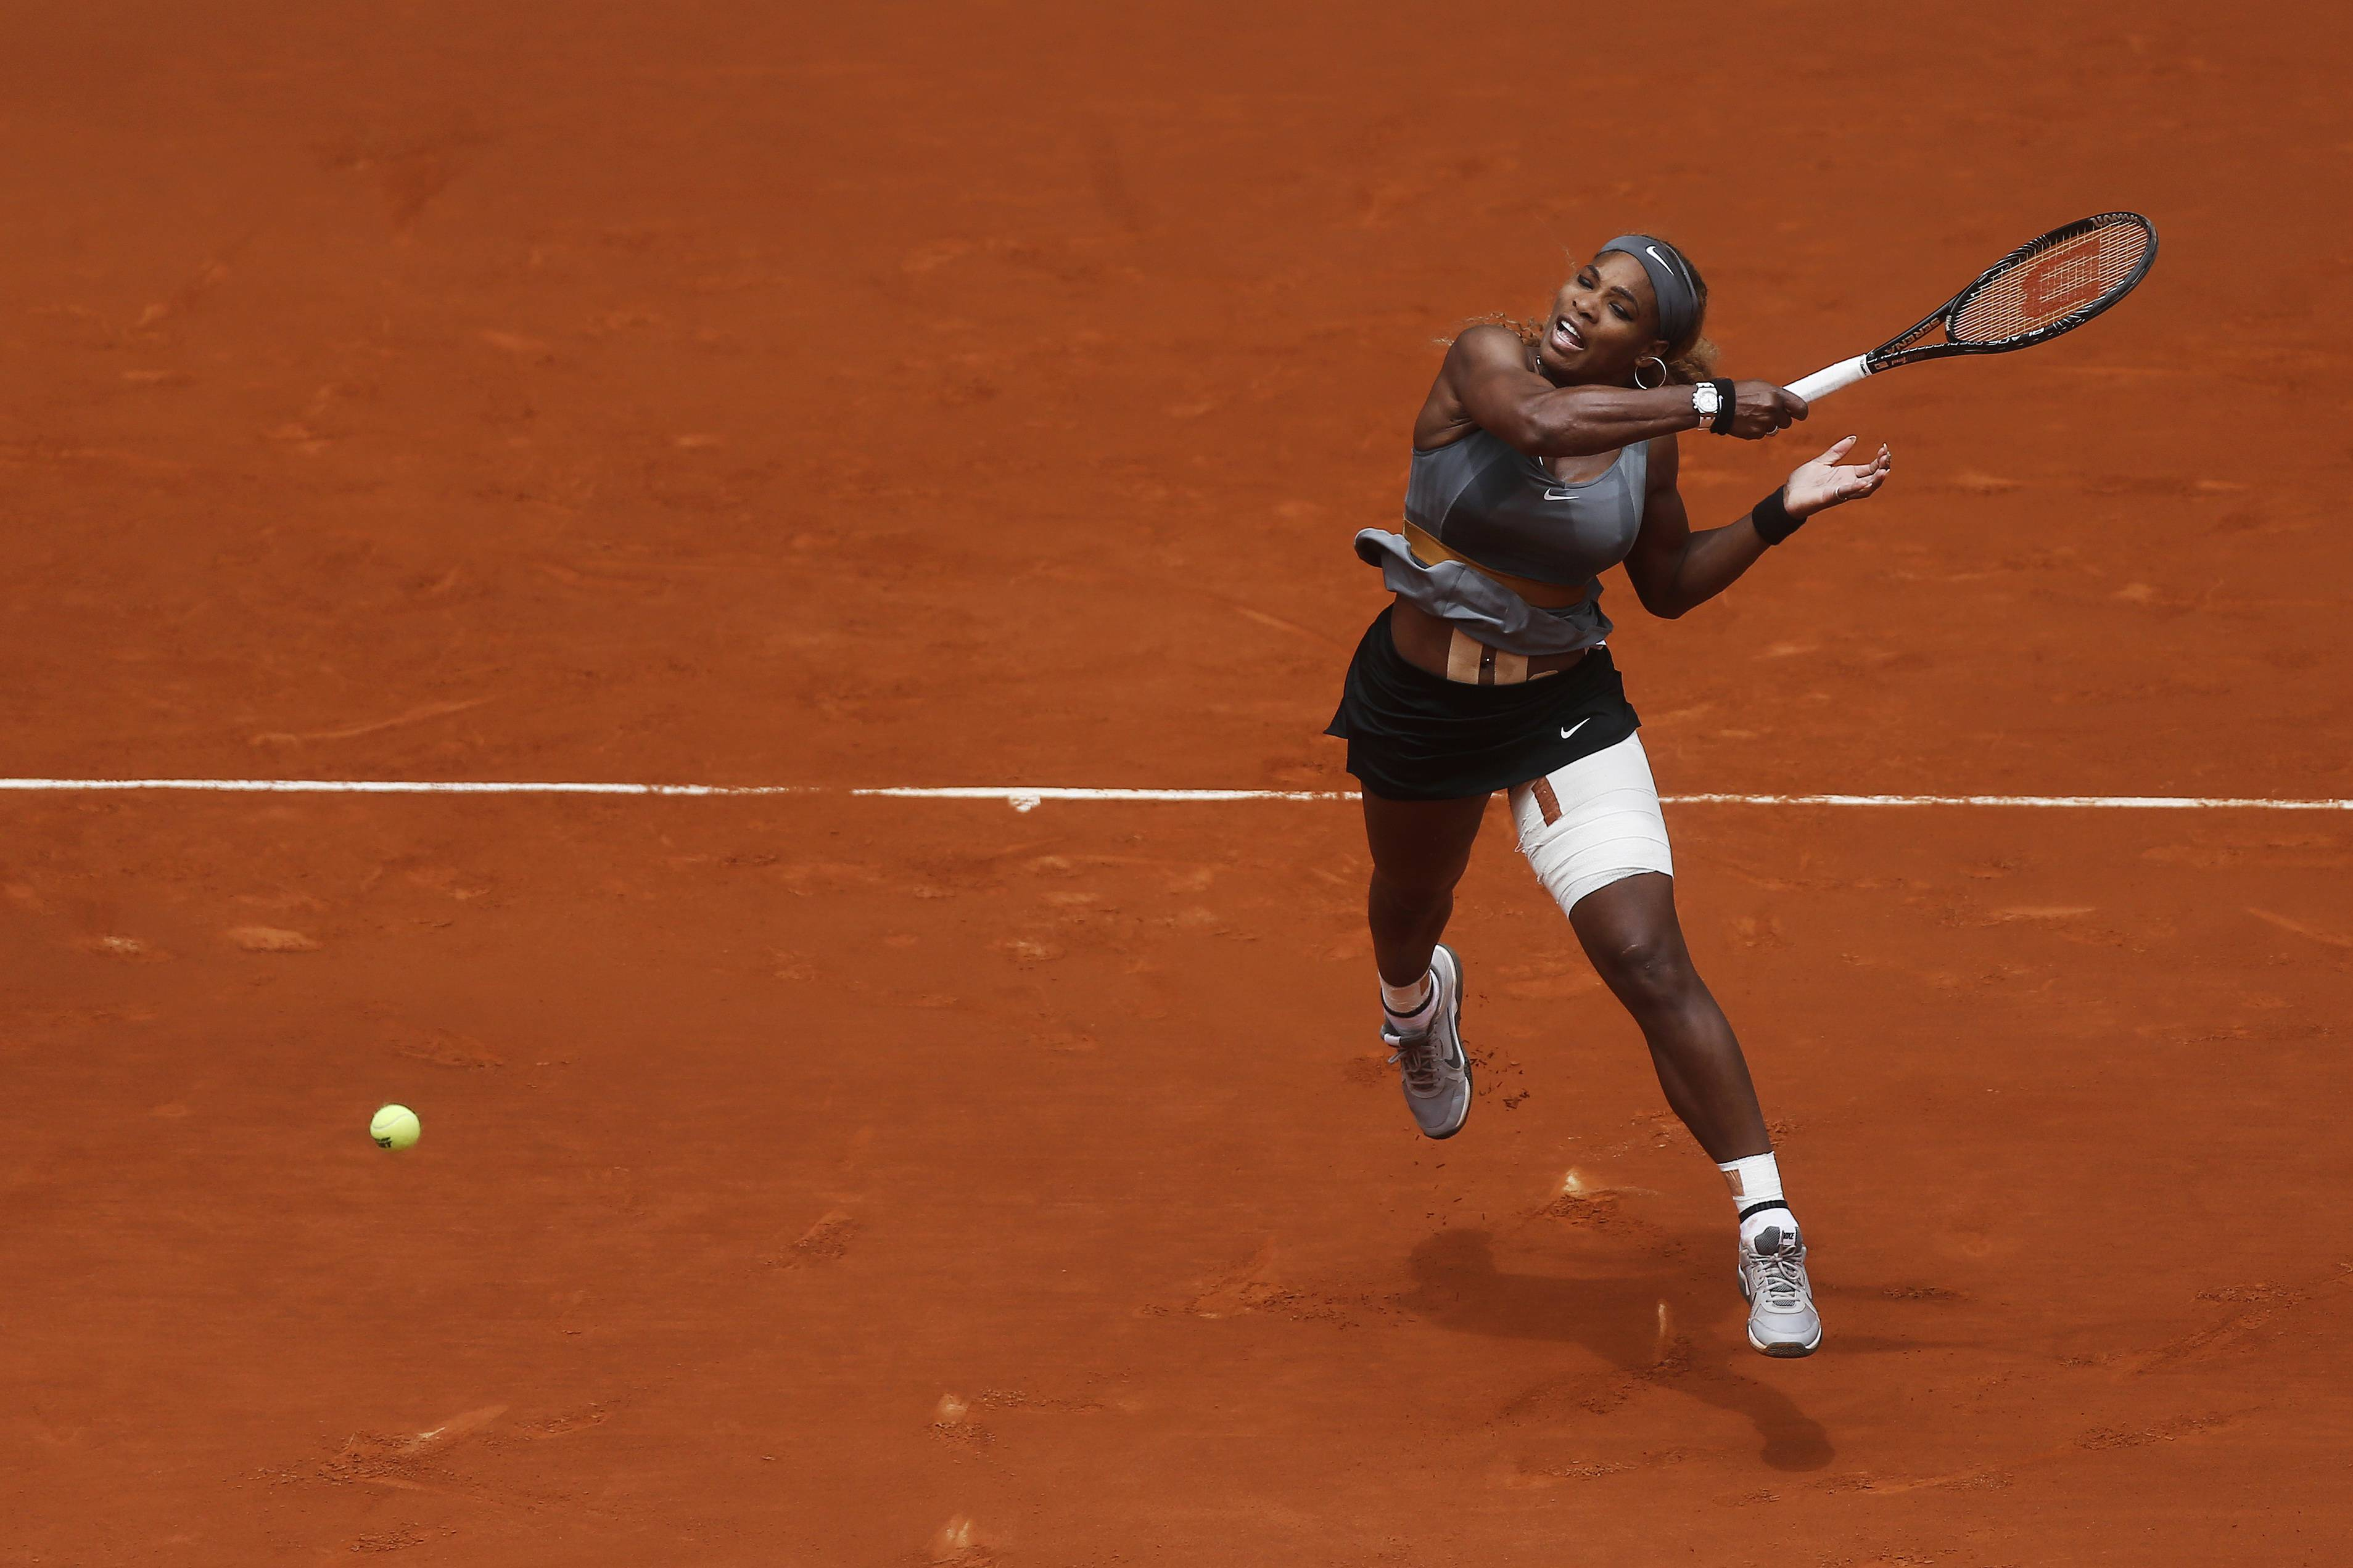 Serena Williams from U.S. returns the ball to Shuai Peng from China during a Madrid Open tennis tournament match in Madrid, Spain, Wednesday, May 7, 2014.